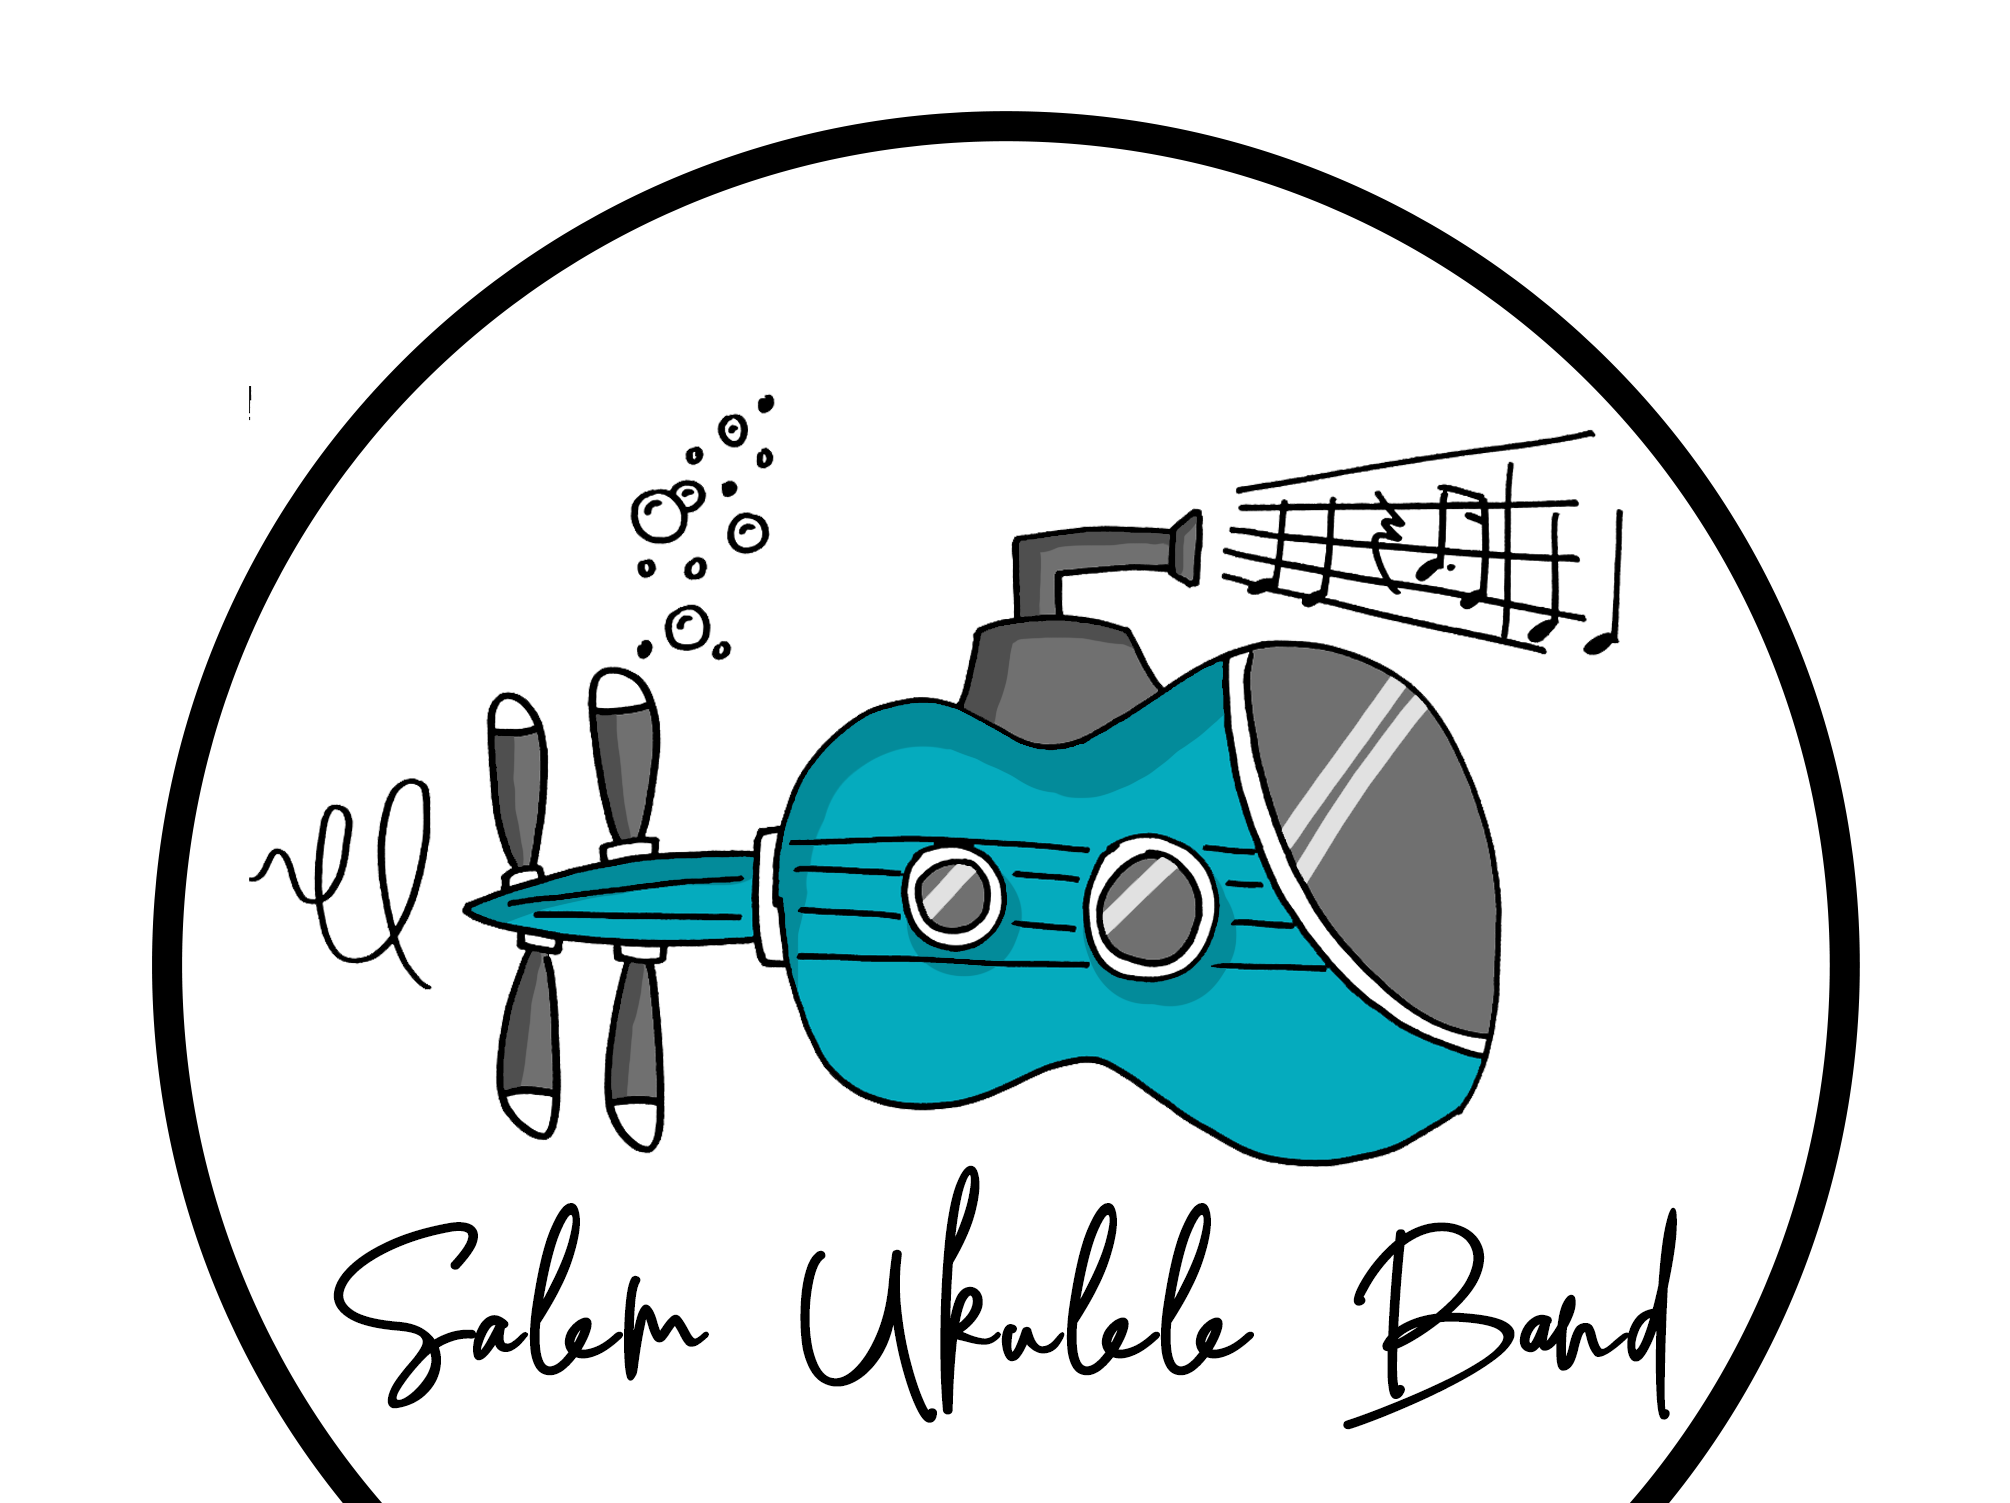 Salem Ukulele Band — hits from Disney to Metallica:Salem Ukulele Band performs a variety of songs from all eras and genres, 7 to 8 p.m. Saturday, May 25,Unitarian Universalist Congregation of Salem, 5090 Center St. NE.$8 at the door or what you can pay. Information: salemukuleleband@gmail.com.